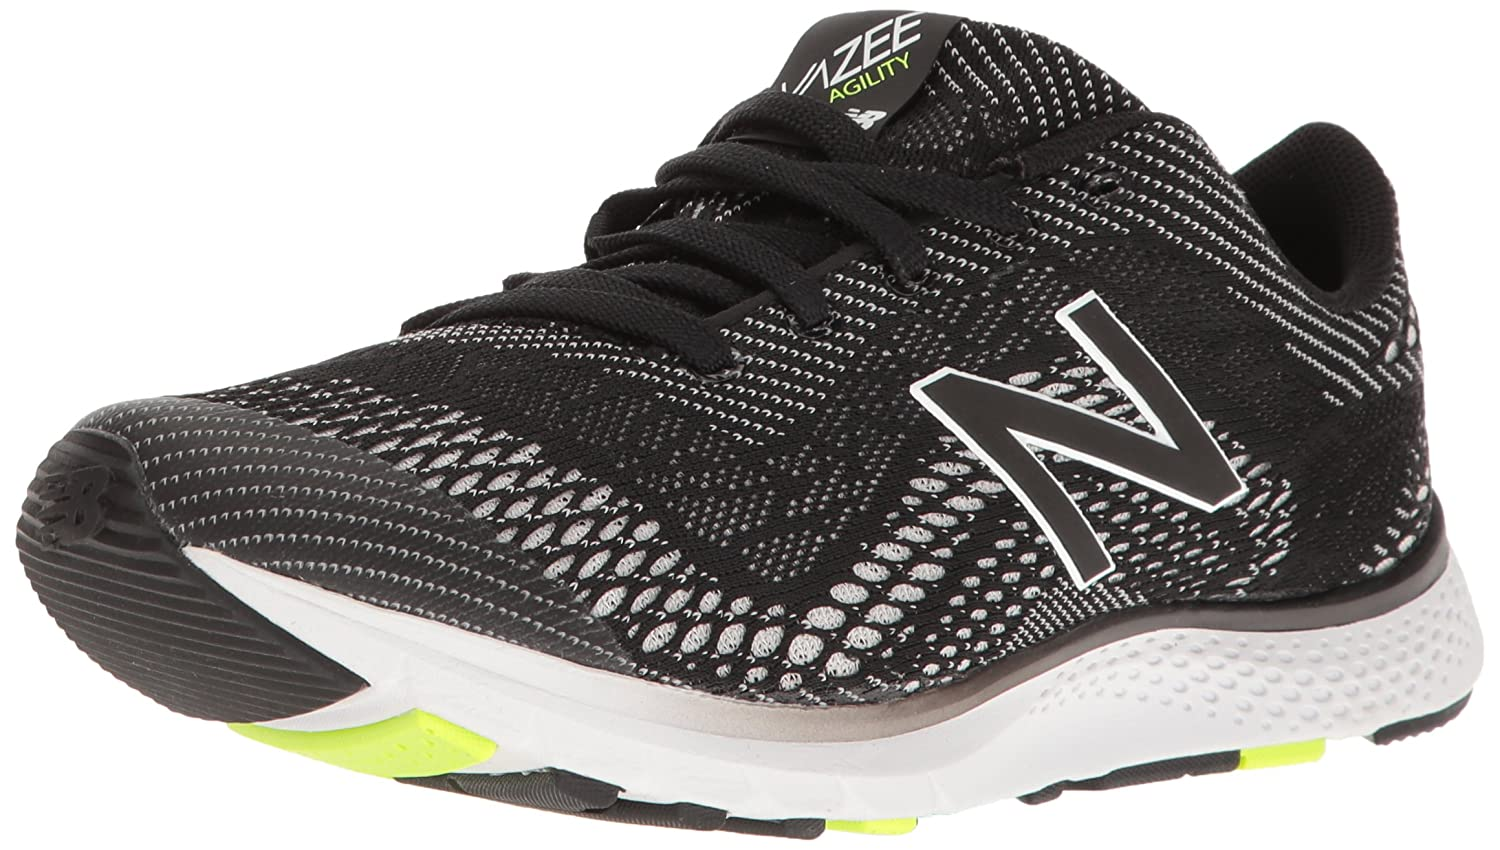 New Balance Women's FuelCore Agility v2 Cross Trainer B01FSISMJE 10 D US|Black/Lime Glow/White